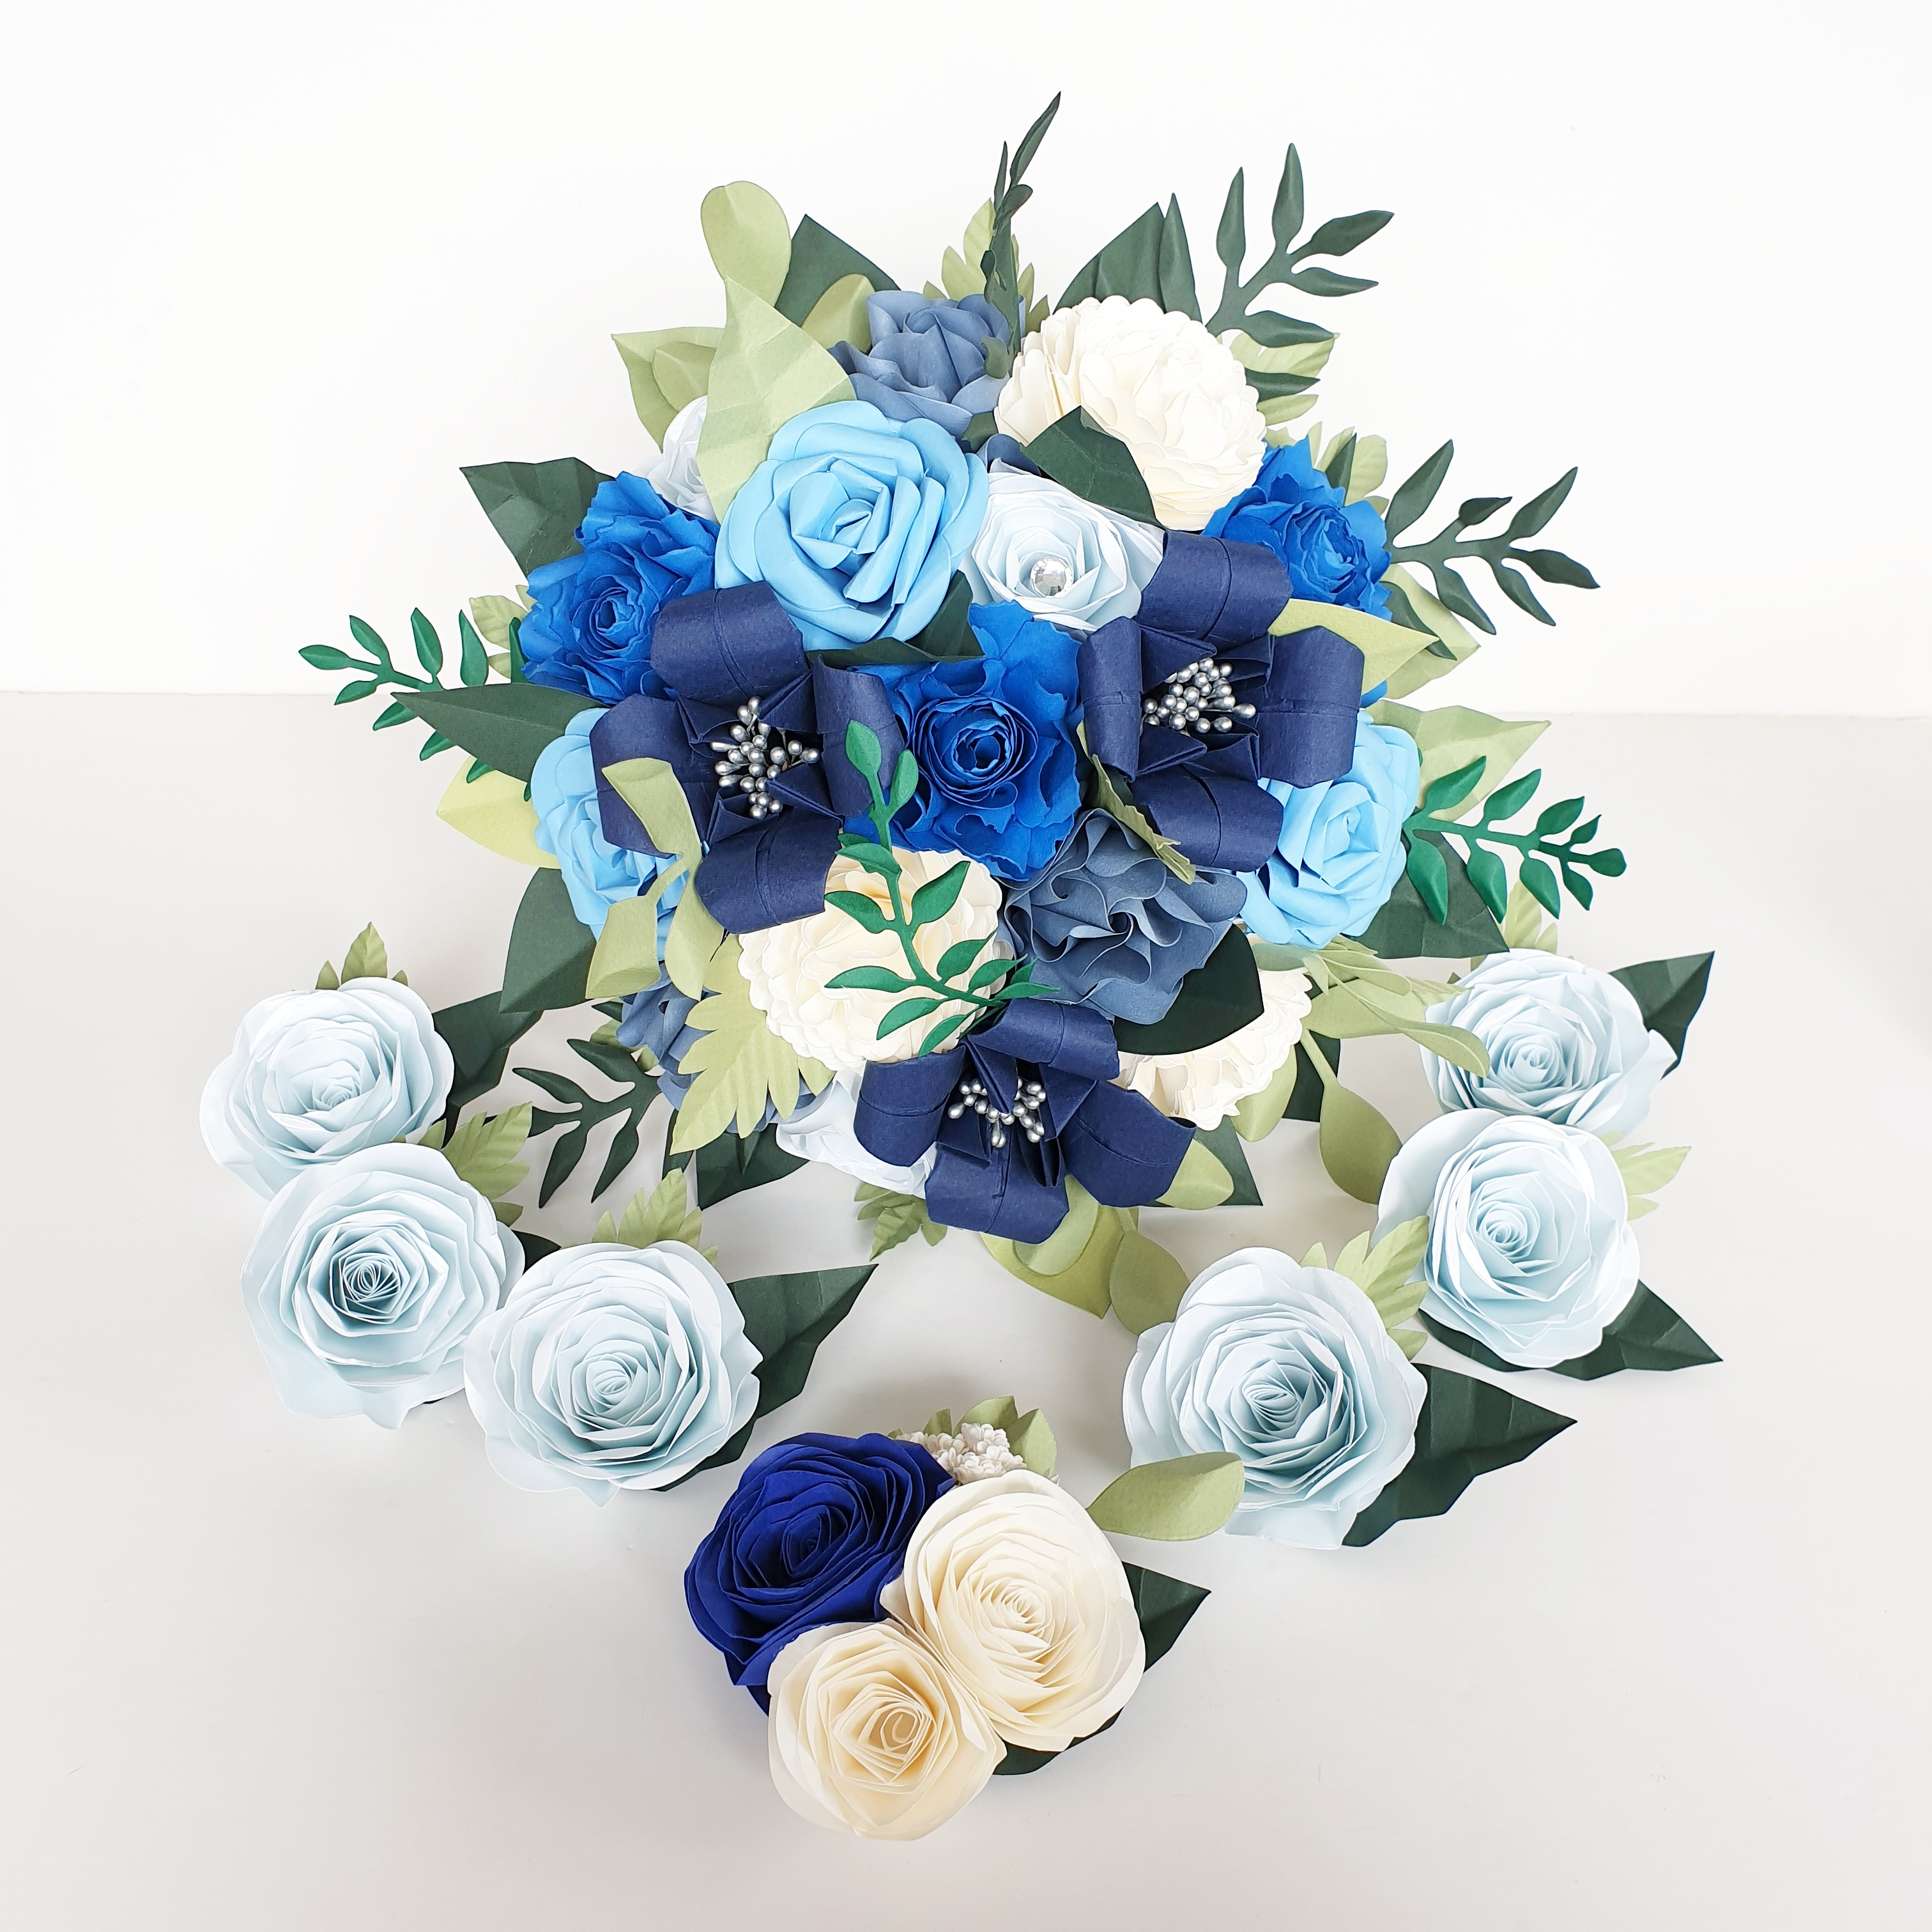 Blue theme wedding celestial star wars theme wedding bride paper flowers bouquet